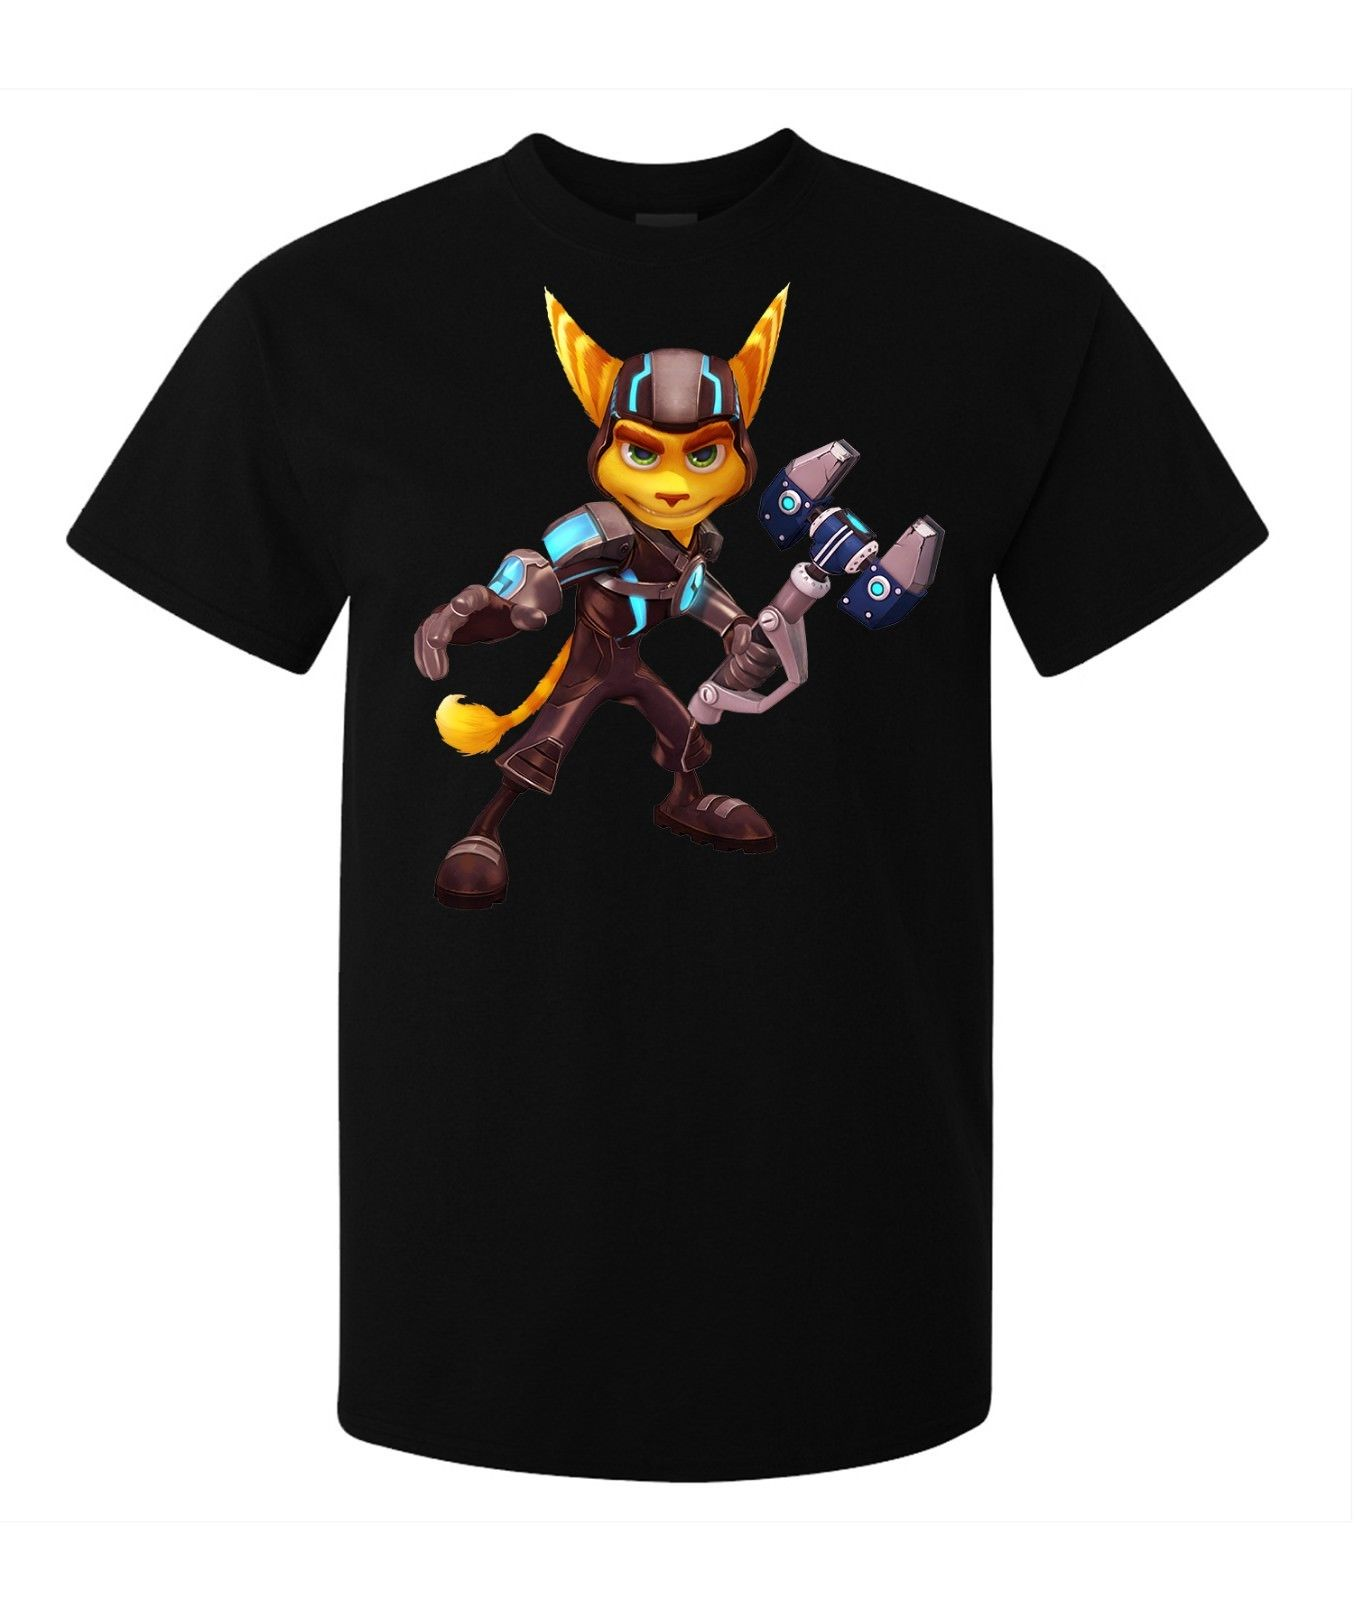 Ratchet And Clank Game Character Ratchet men's (woman's available) t shirt blackCartoon t shirt men Unisex New Fashion image